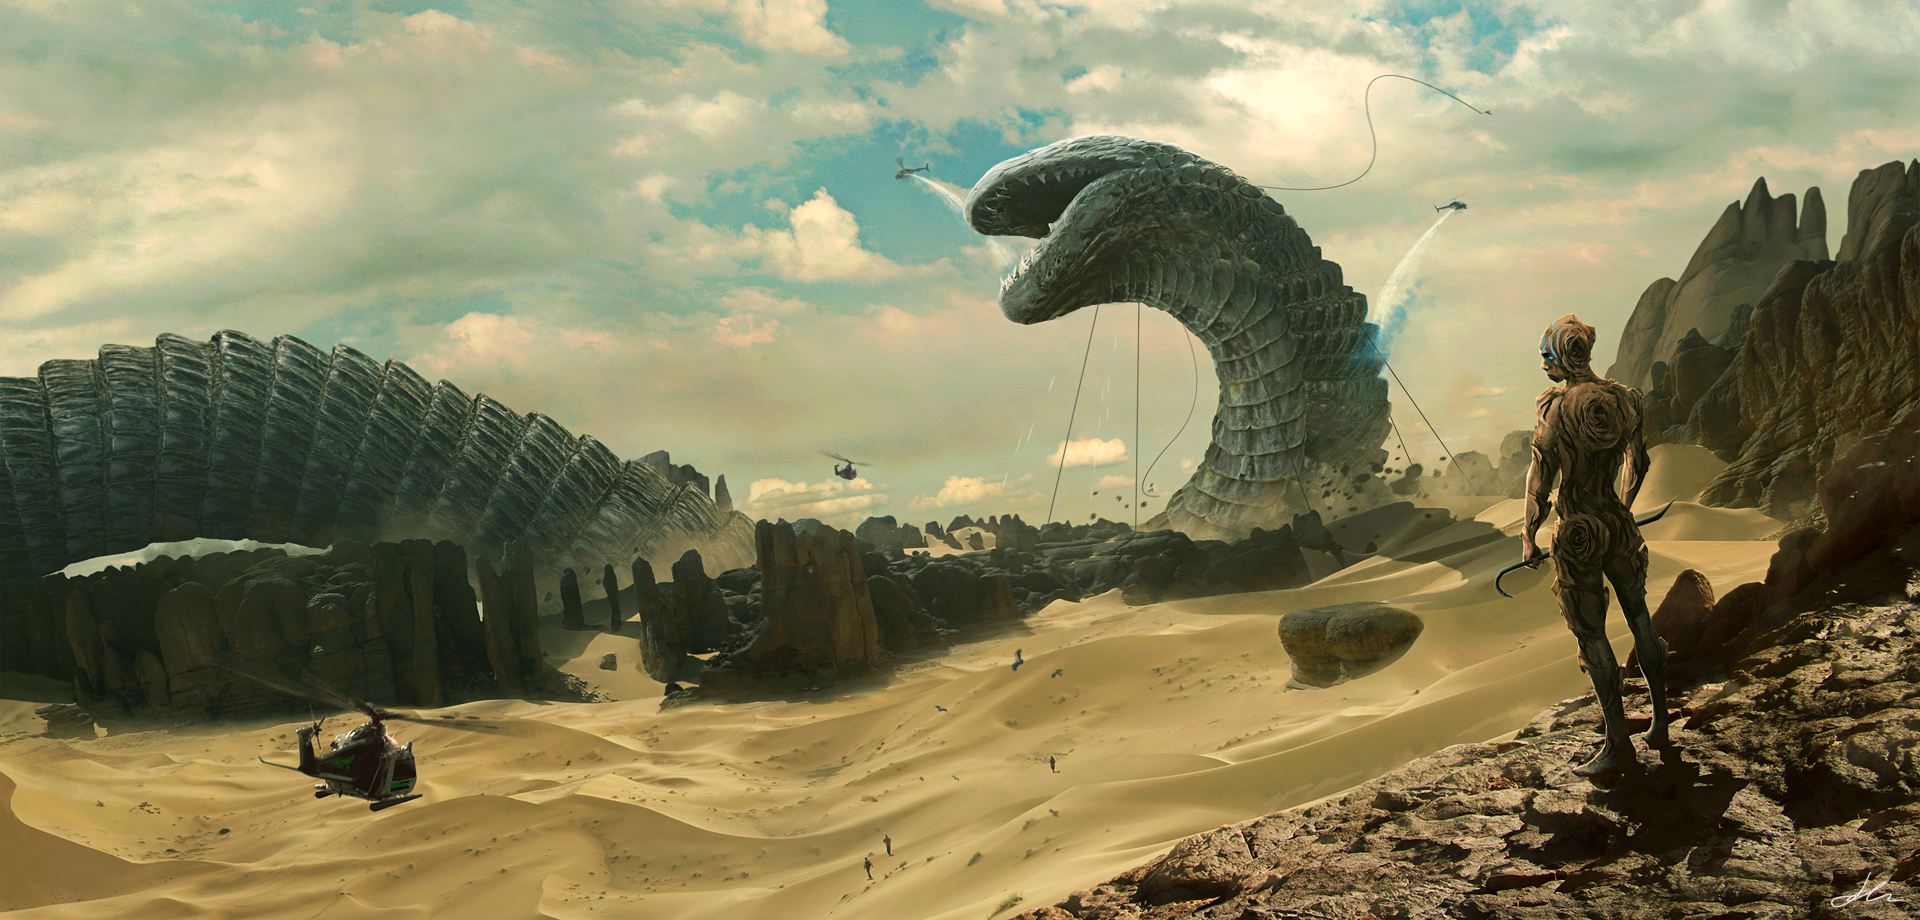 Shai-Hulud and the God Emperor by ErikShoemaker